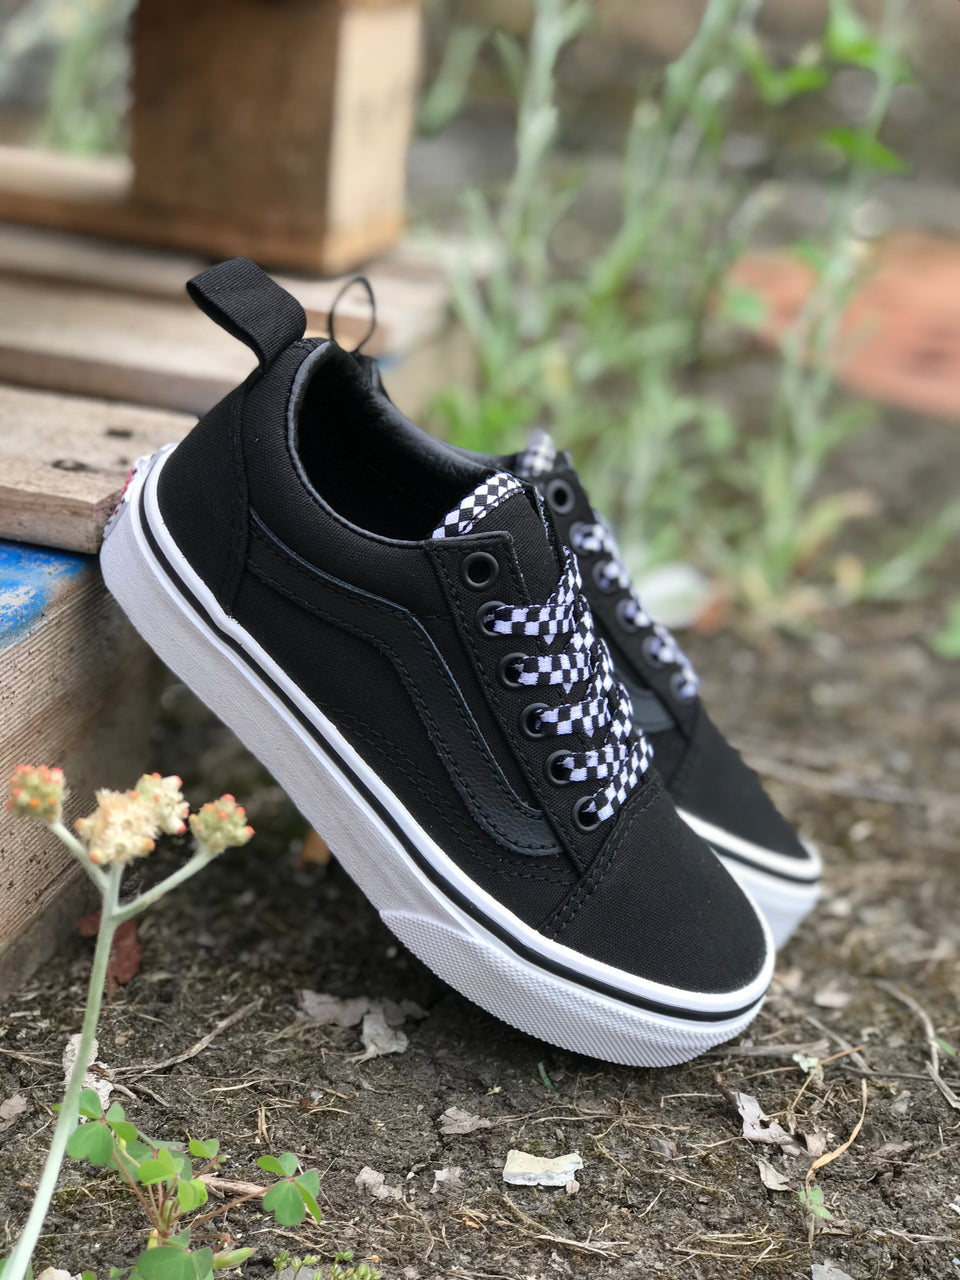 Vans YOUTH Old Skool Elastic (Check Lace) Black/True White